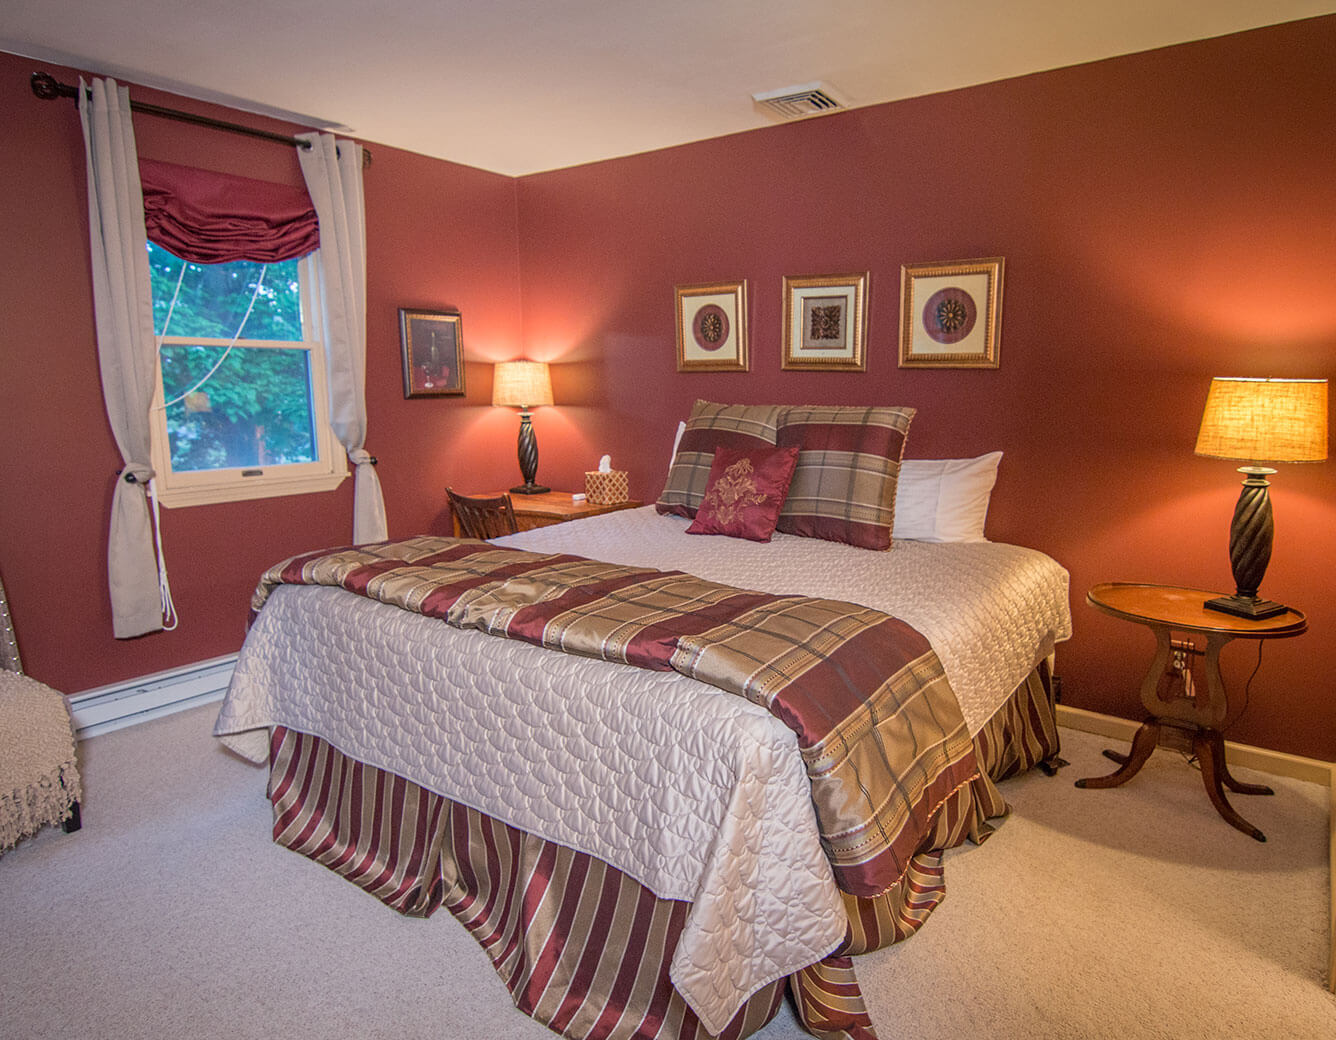 Vinter Room, Magnolia Place Bed & Breakfast, Finger Lakes, NY